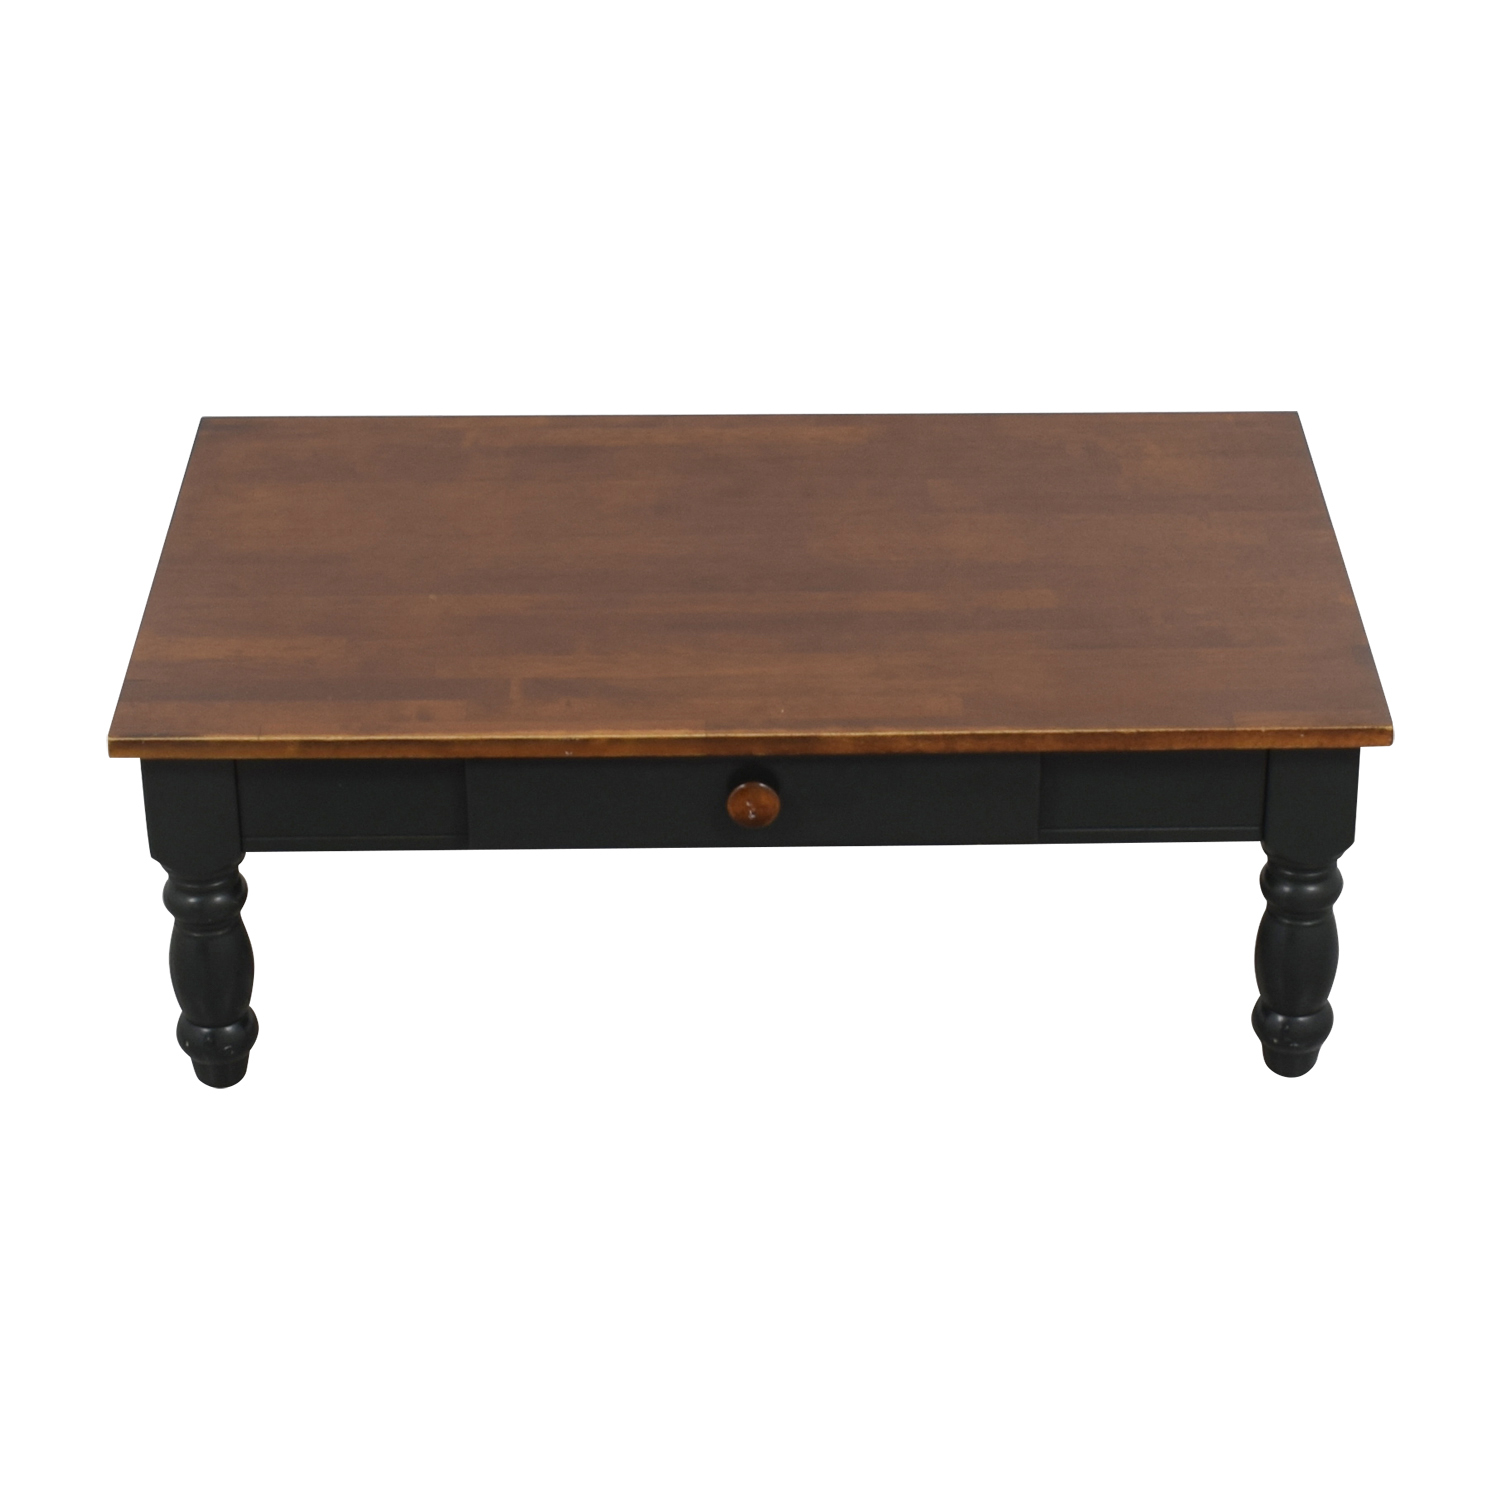 Jennifer Convertibles One-Drawer Coffee Table / Coffee Tables